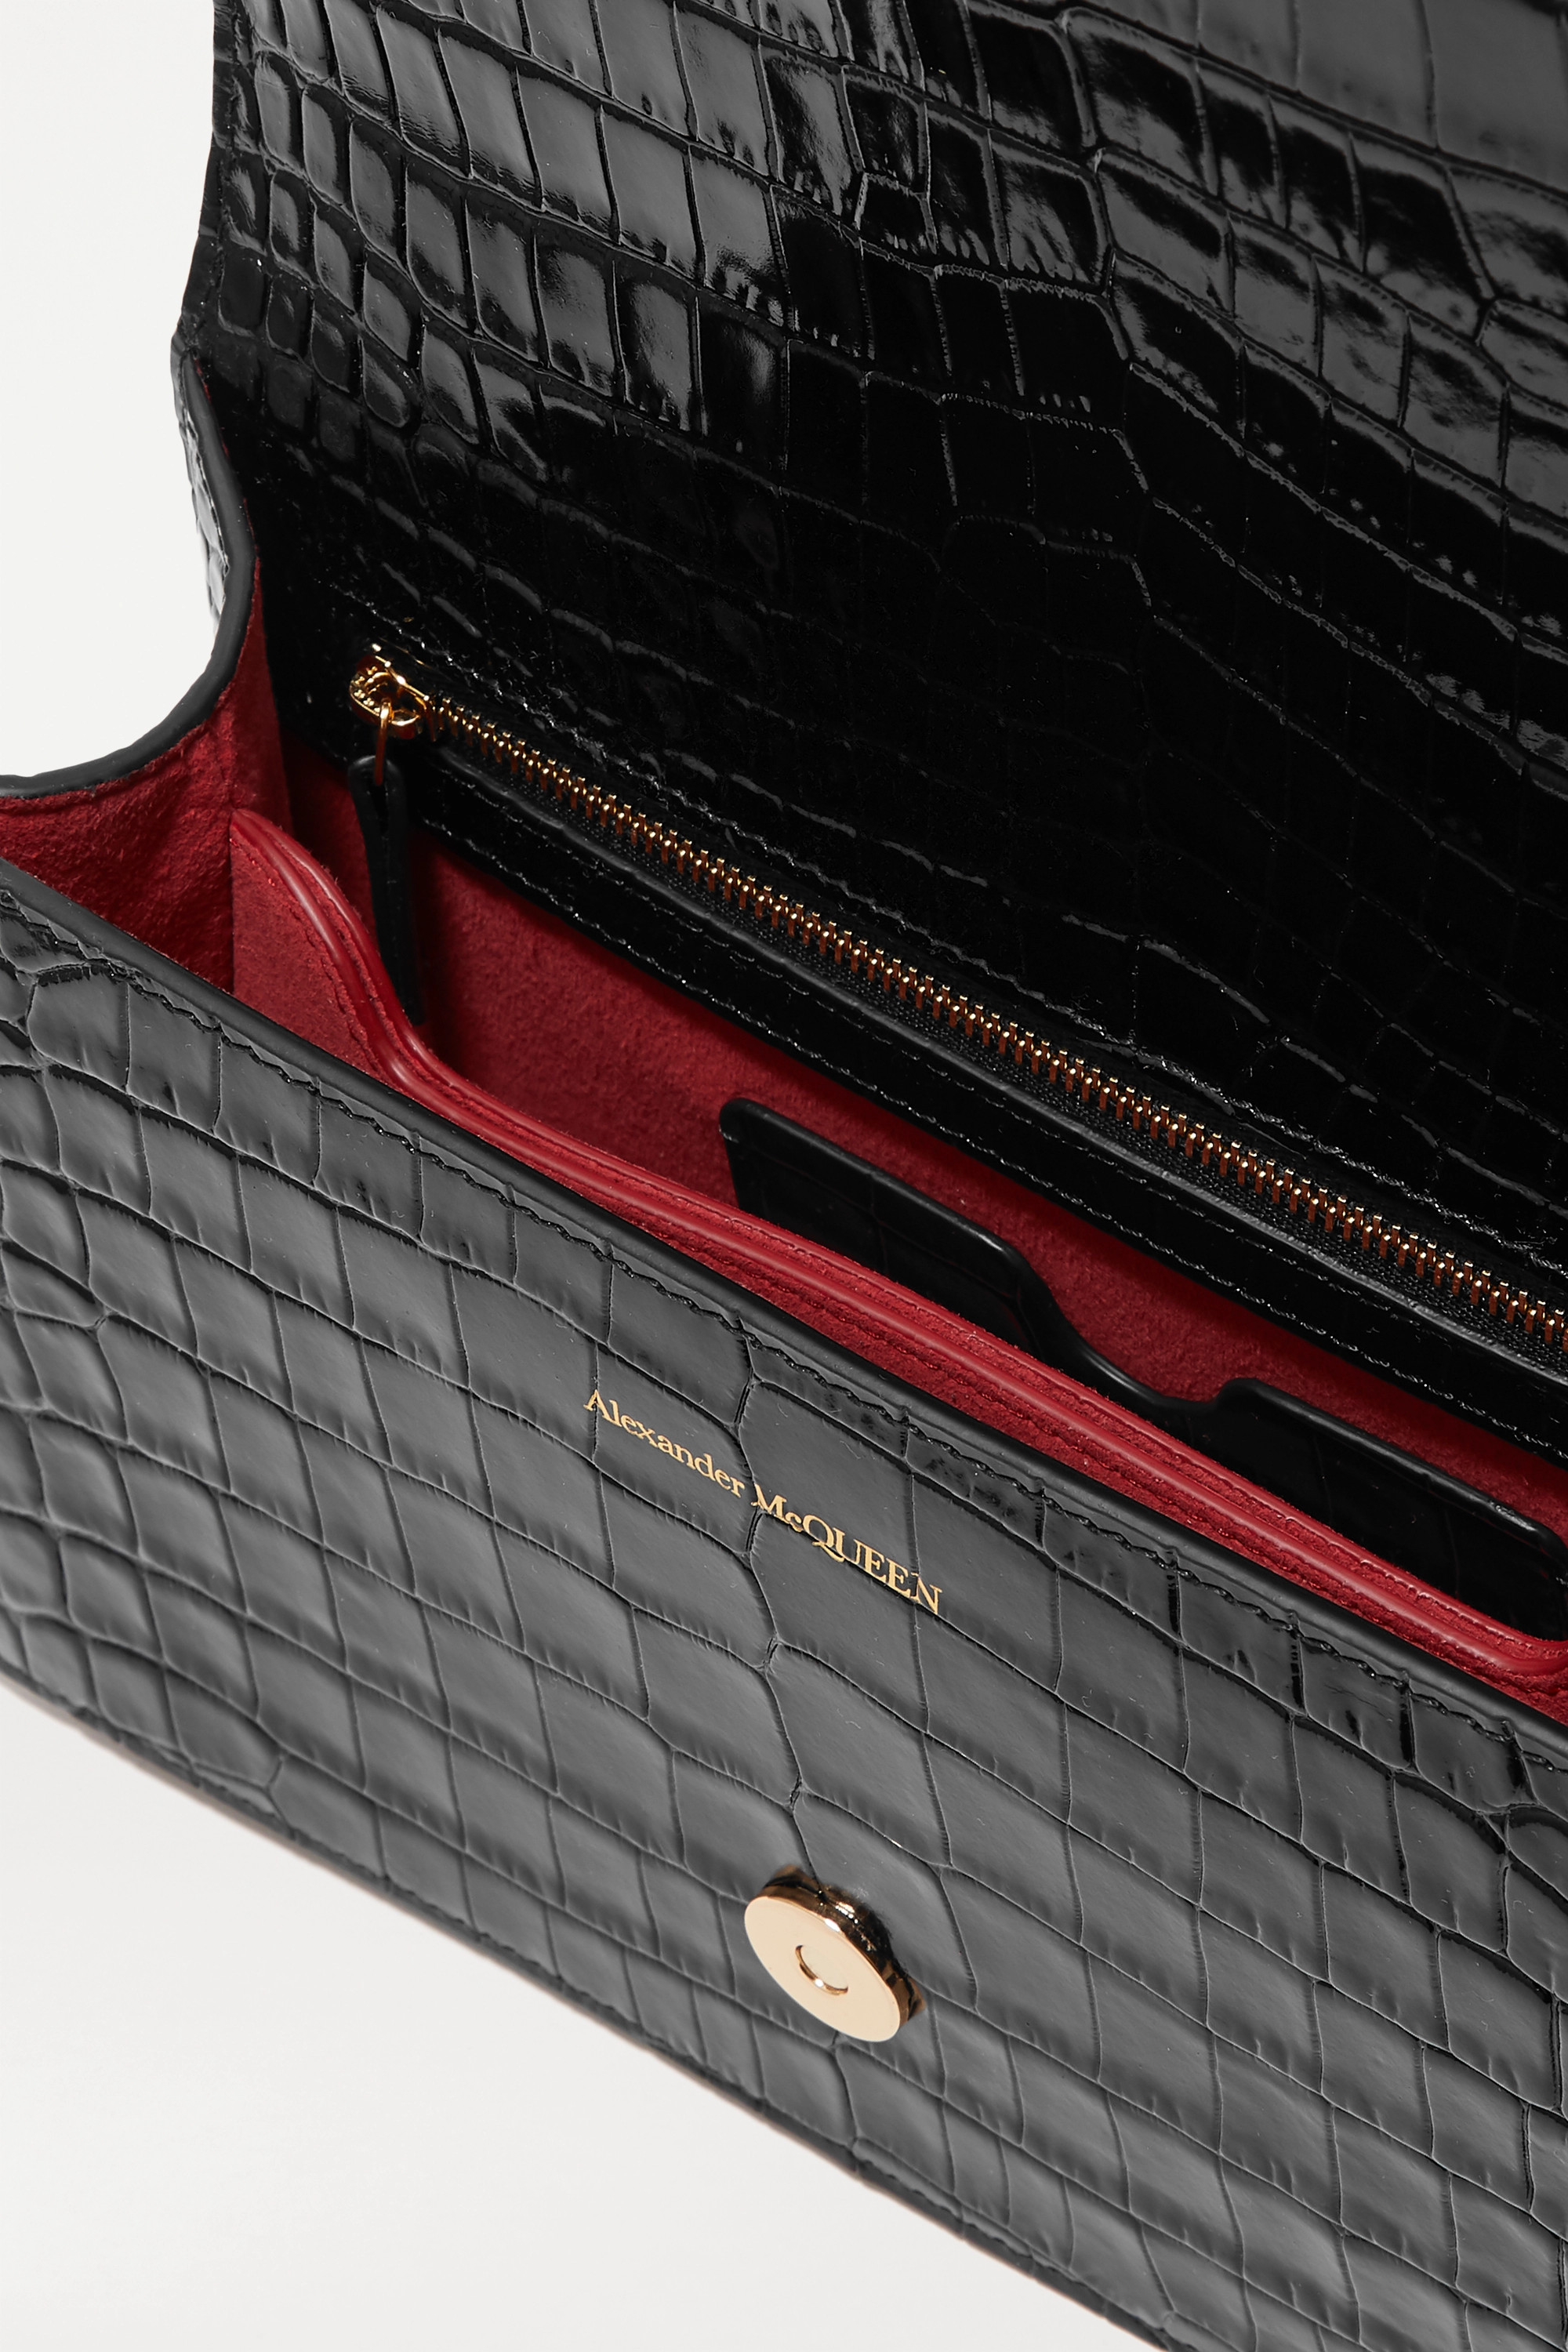 ALEXANDER MCQUEEN Jewelled Satchel embellished croc-effect leather shoulder bag